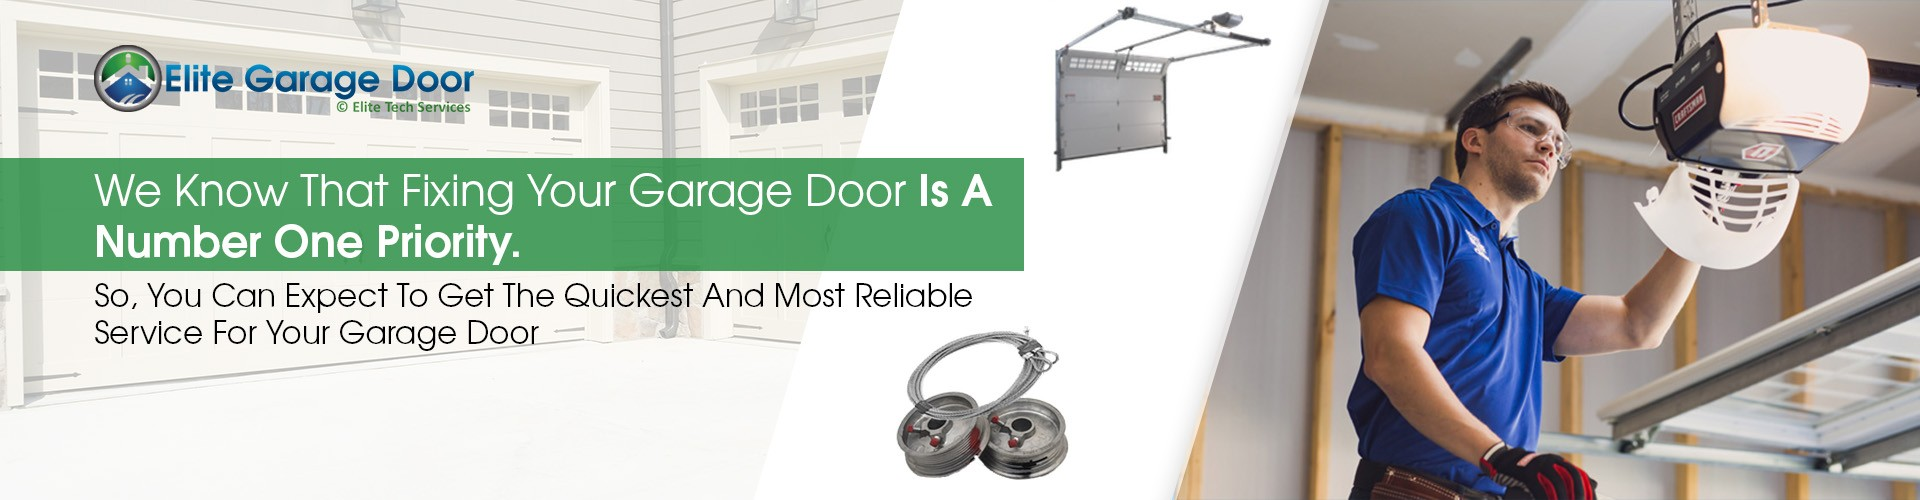 elite garage doorGarage Door Repair Kent WA  Elite Garage Door  Electric Gate